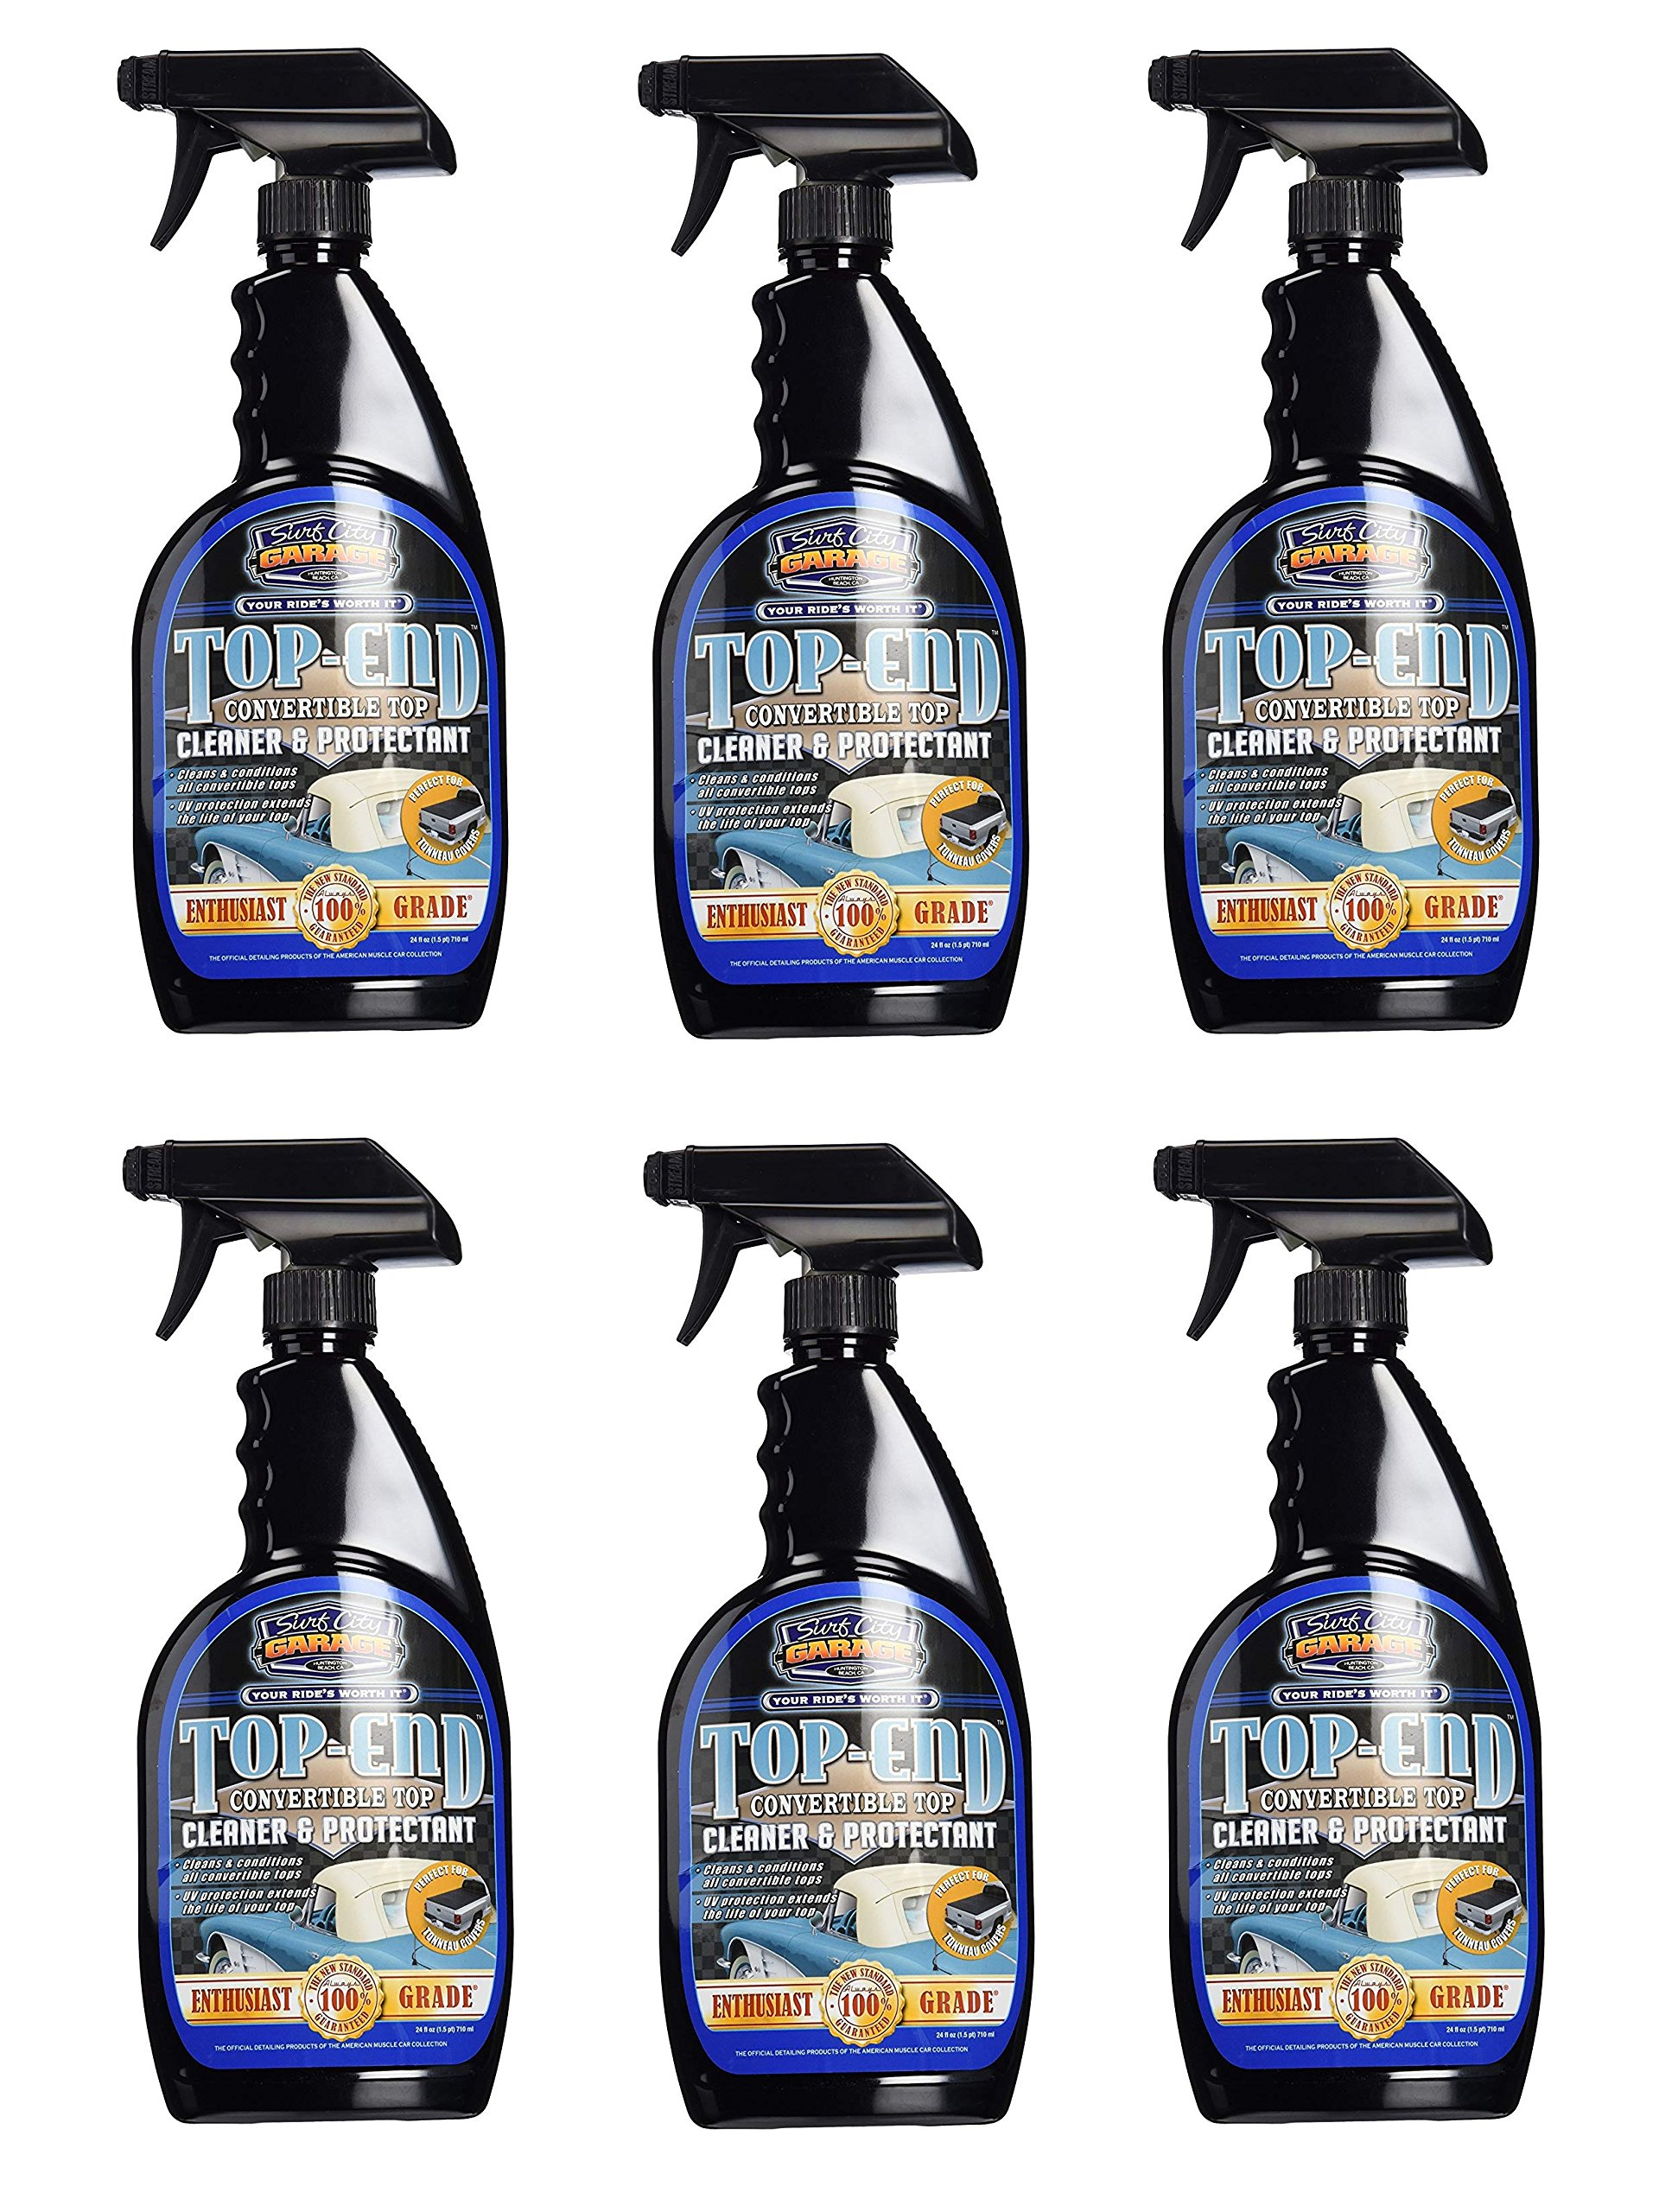 SURF CITY Garage 109 Top End Convertible Cleaner and Protectant, 24 fl. oz. (6)